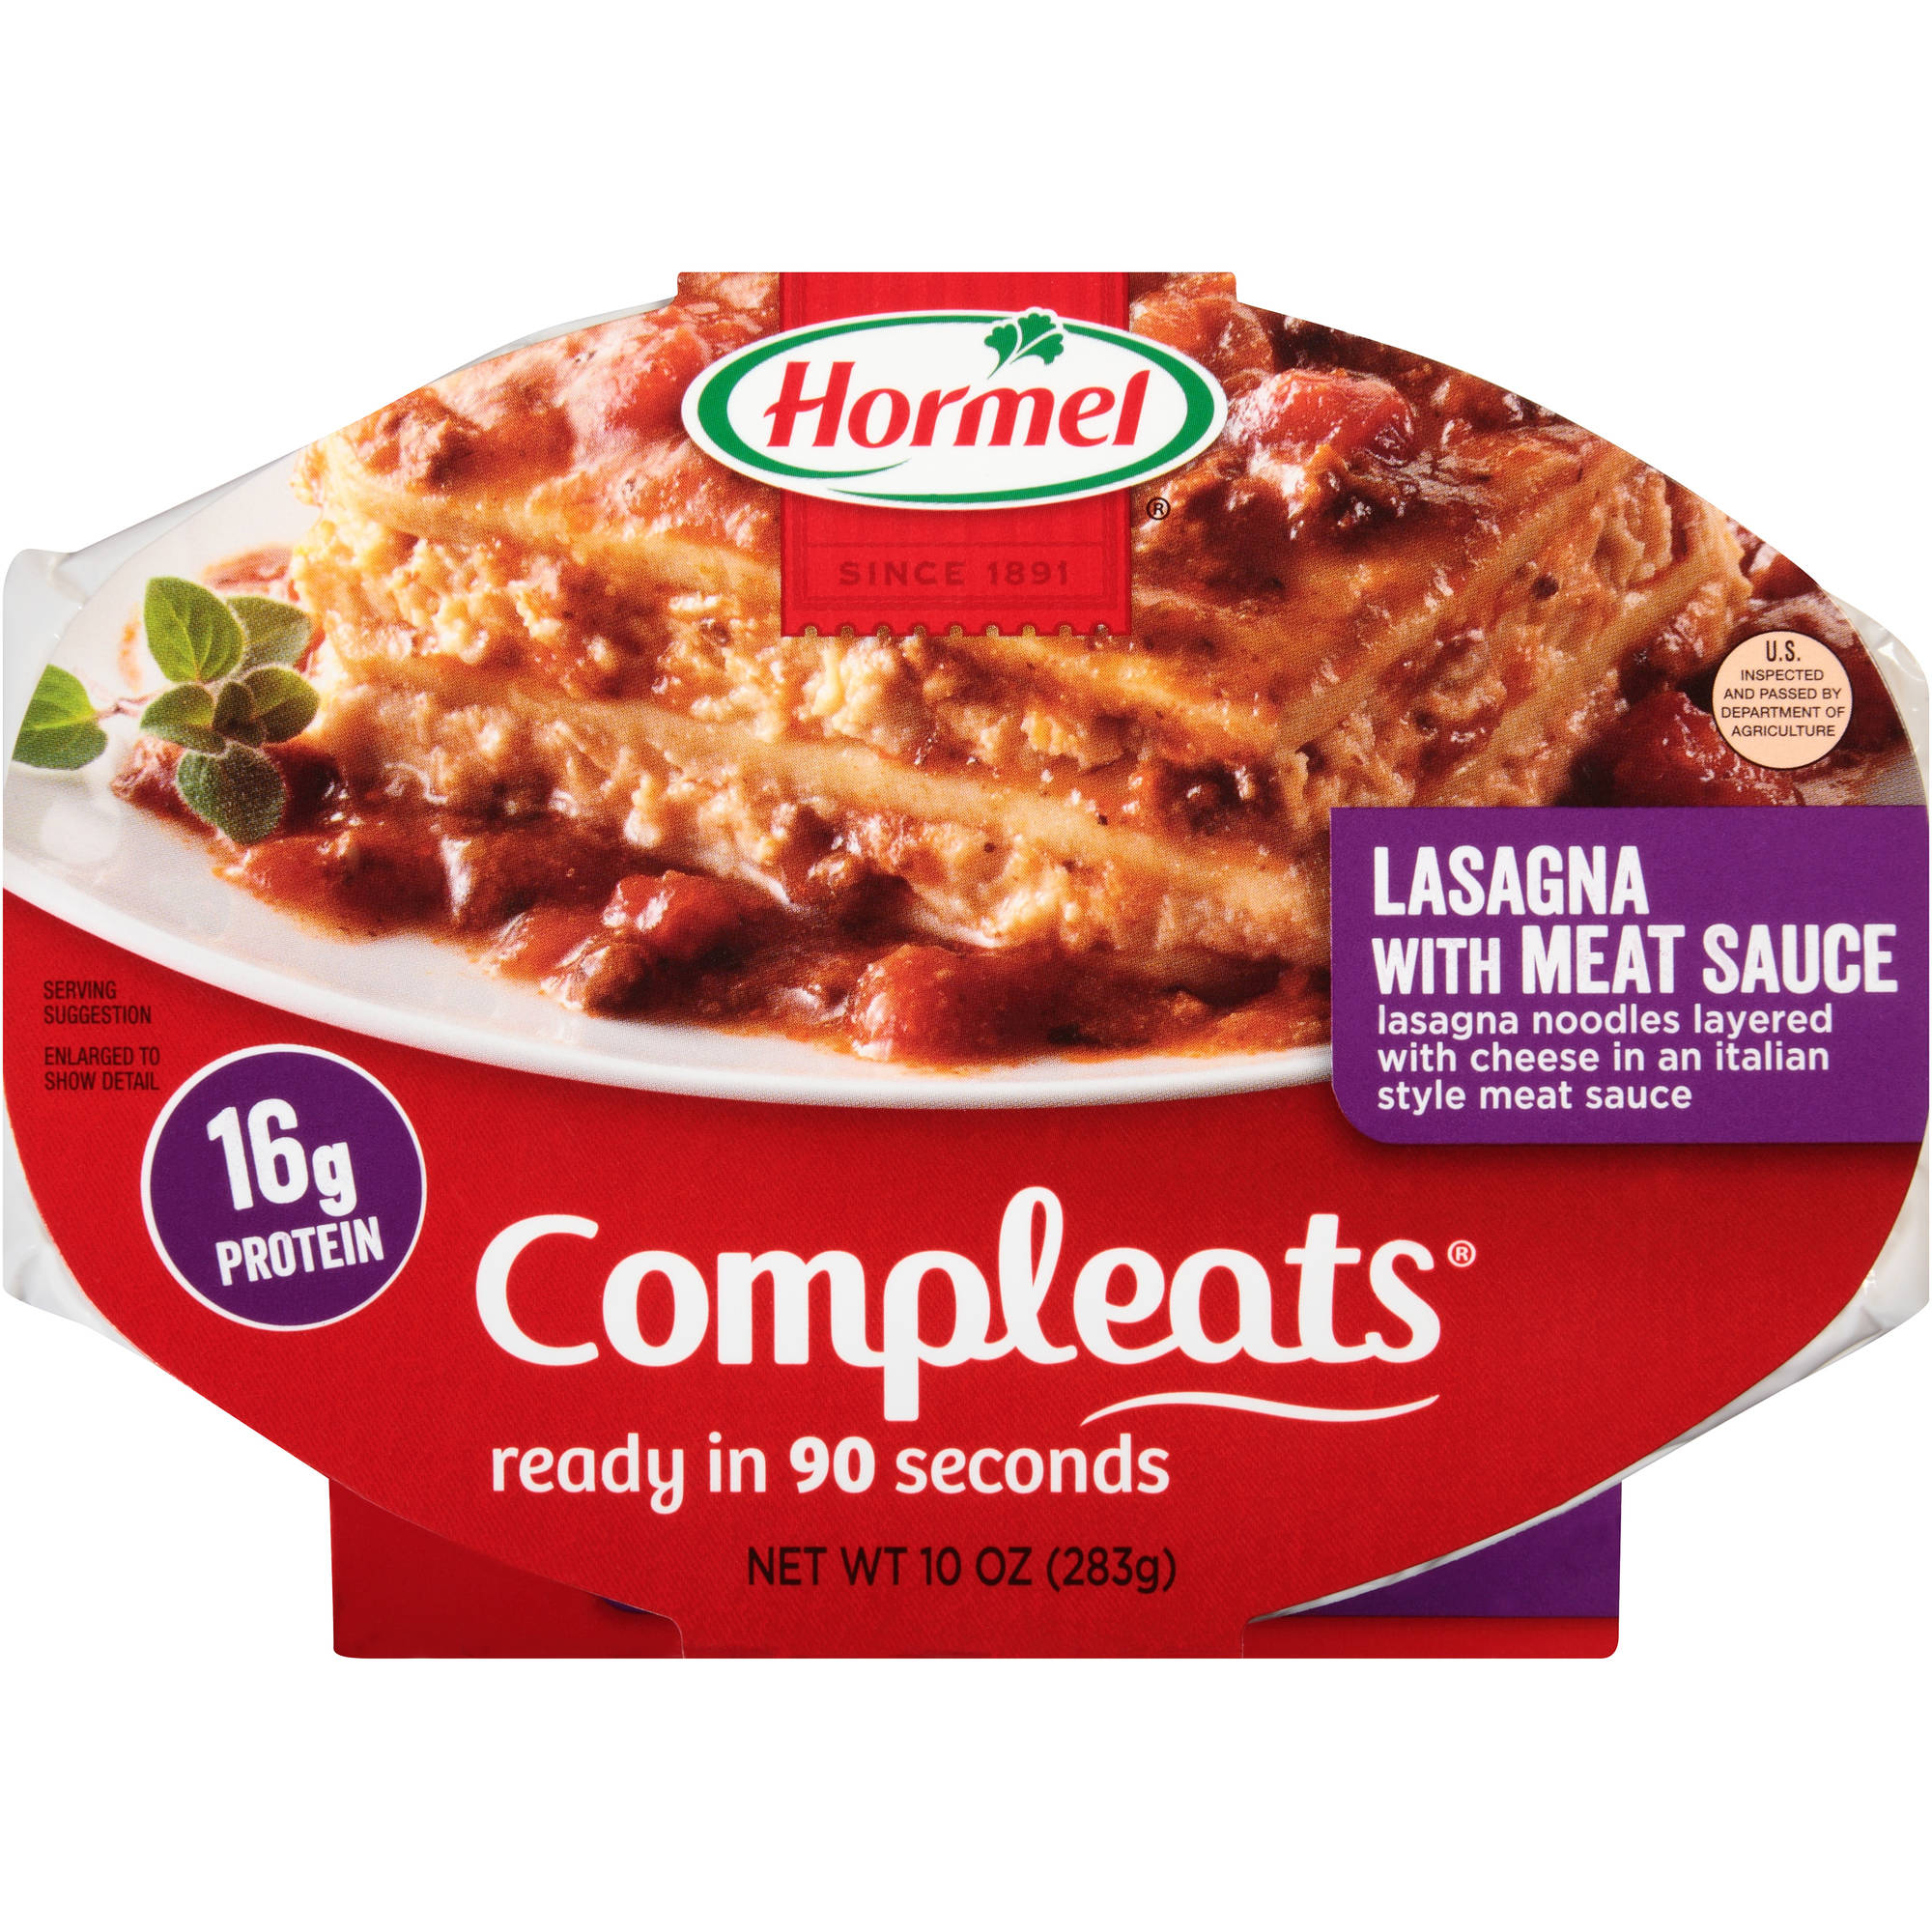 Hormel Compleats Lasagna with Meat Sauce, 10 oz